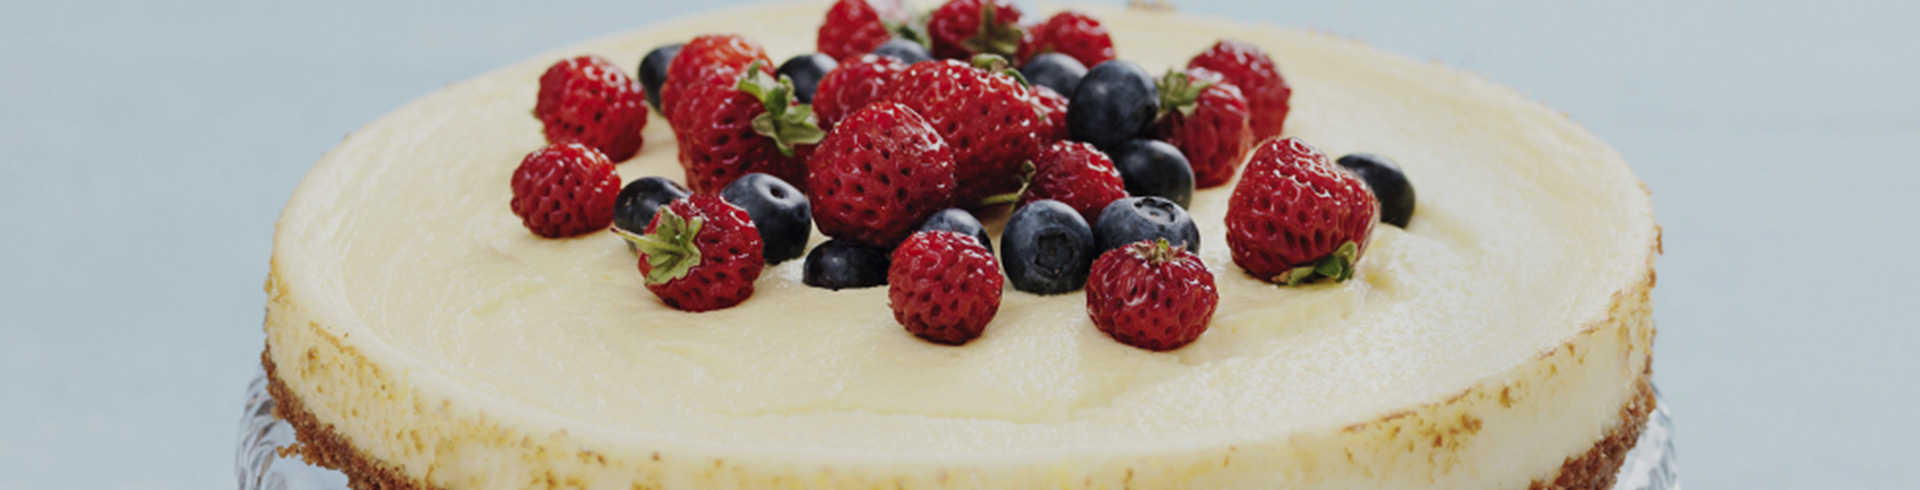 Cheesecake recept | ICA